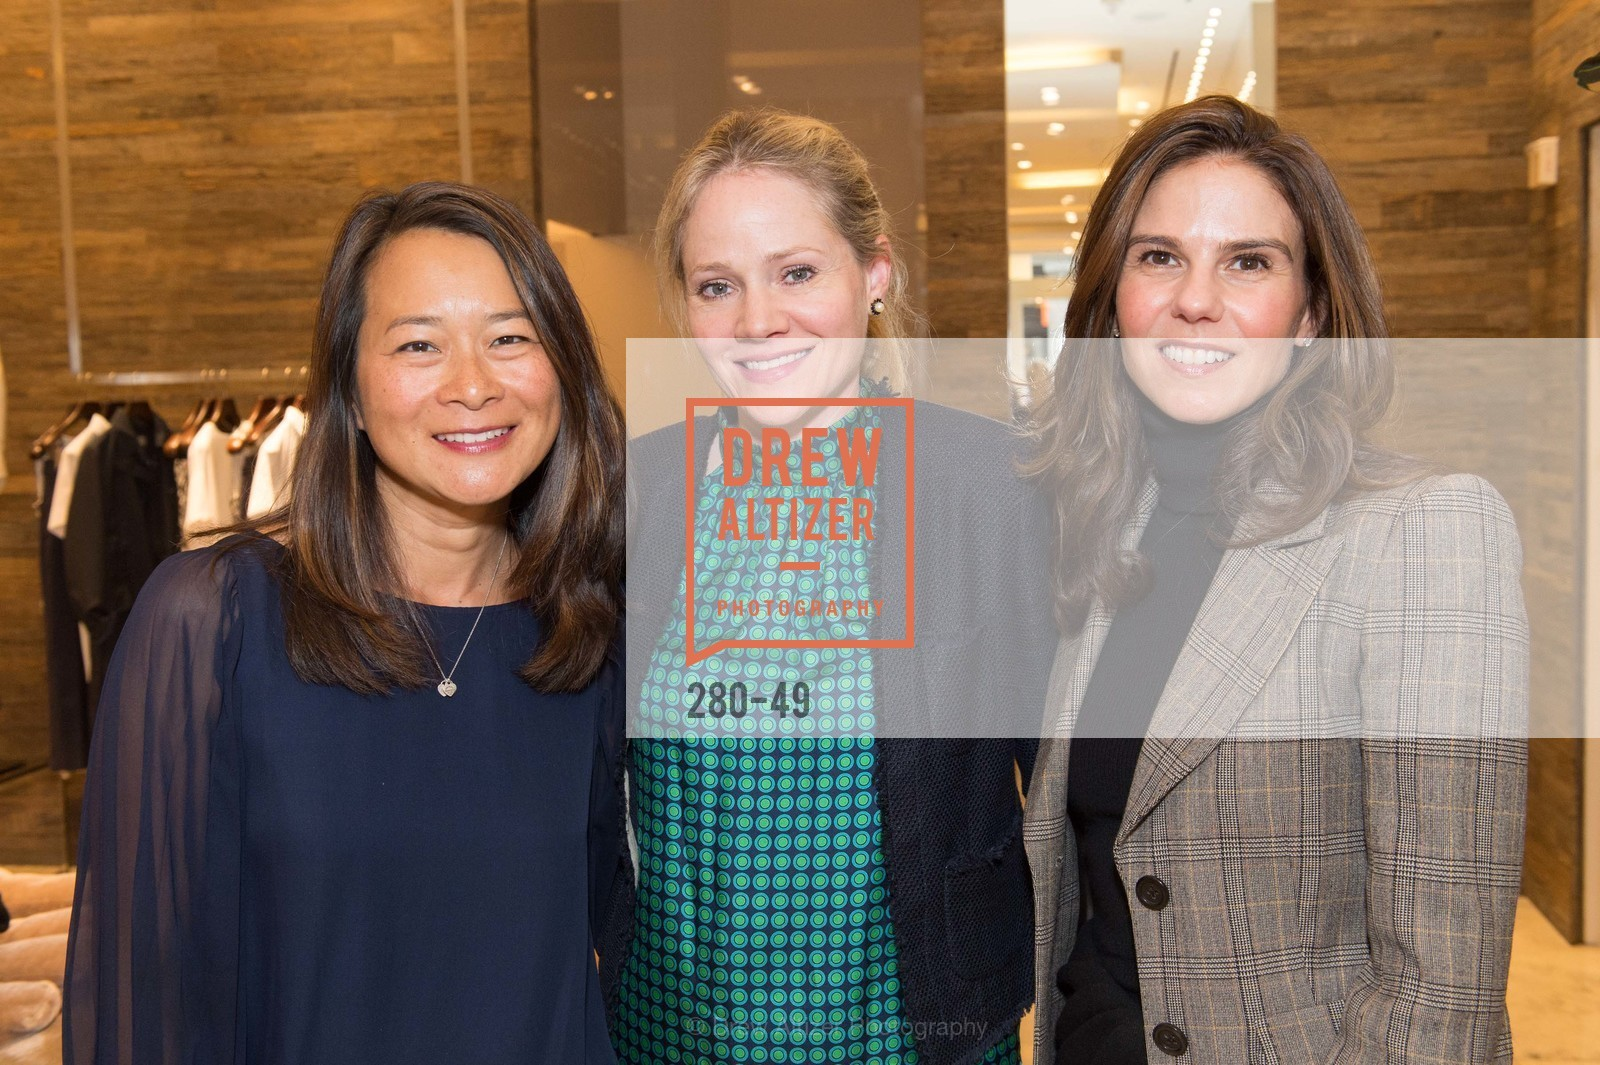 Jennifer Vander Marck, Camille Marks, Andrea Zola, Luncheon Hosted by Max Mara, Max Mara. 175 Post St, San Francisco, CA 94108, April 21st, 2015,Drew Altizer, Drew Altizer Photography, full-service agency, private events, San Francisco photographer, photographer california